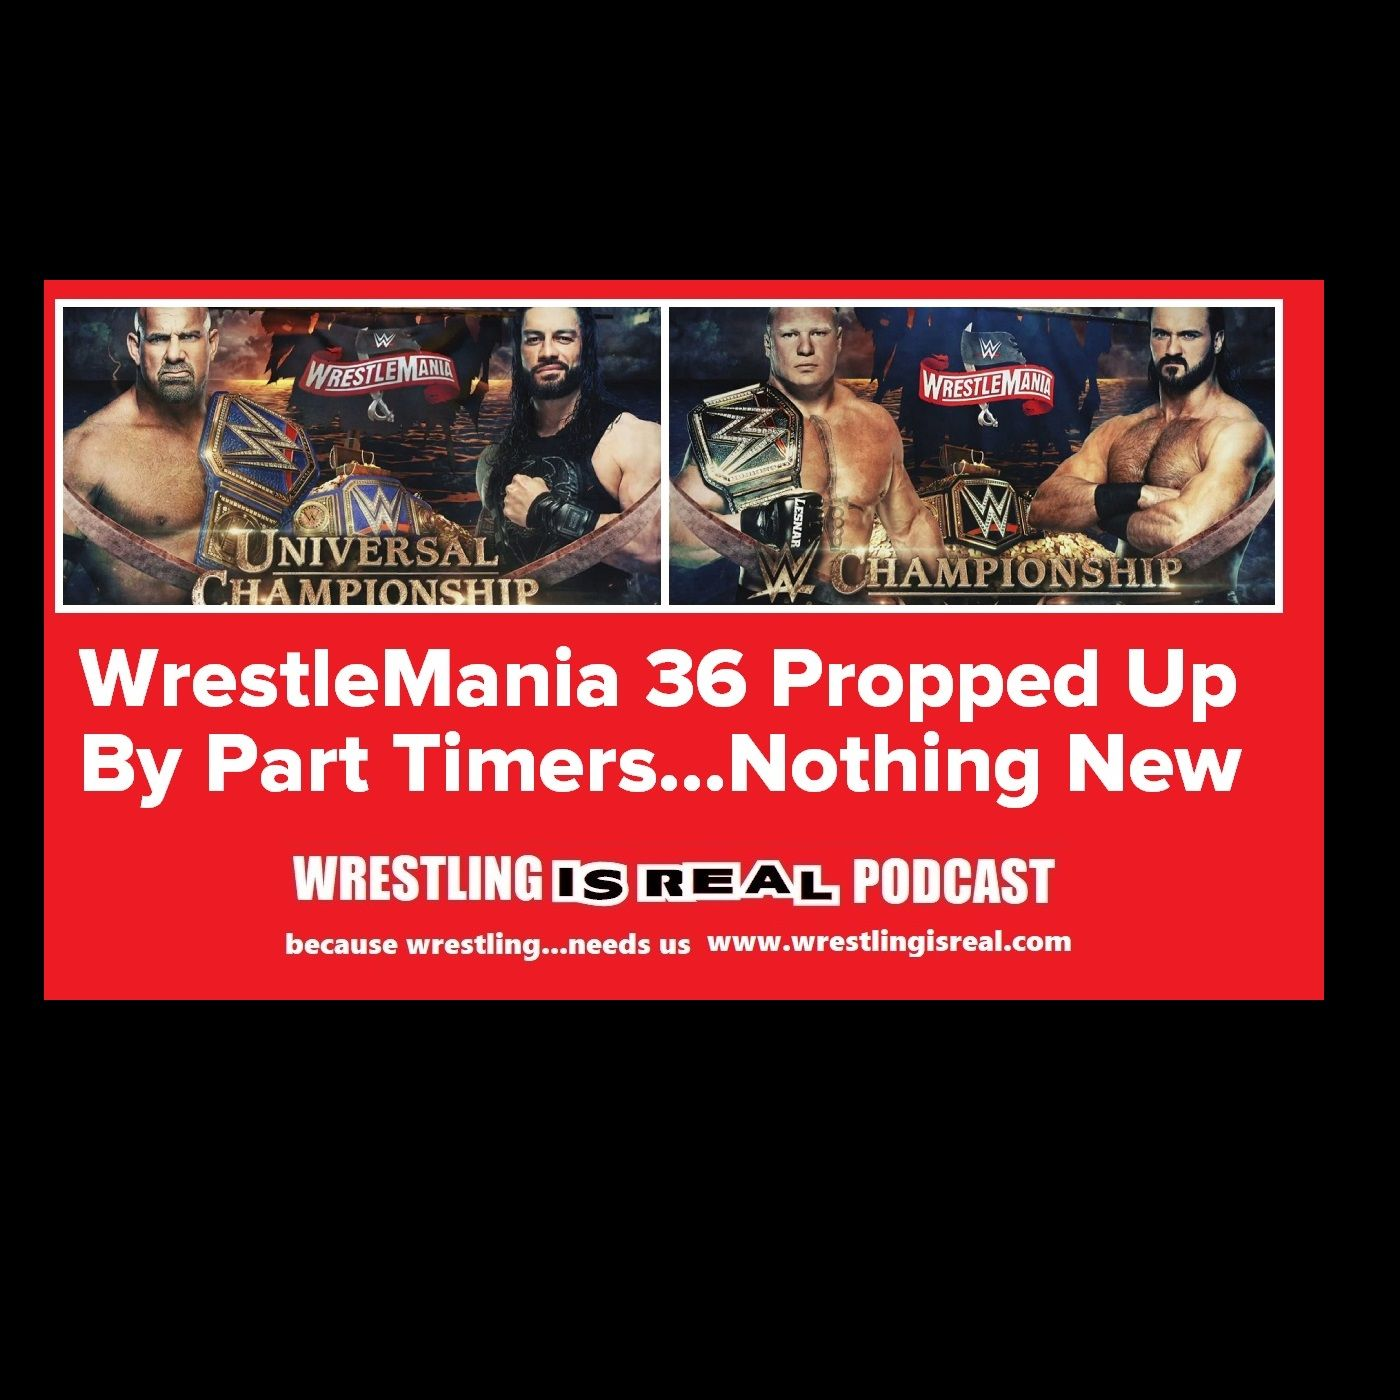 WrestleMania 36 Propped Up By Part Timers...Nothing New KOP030520-519